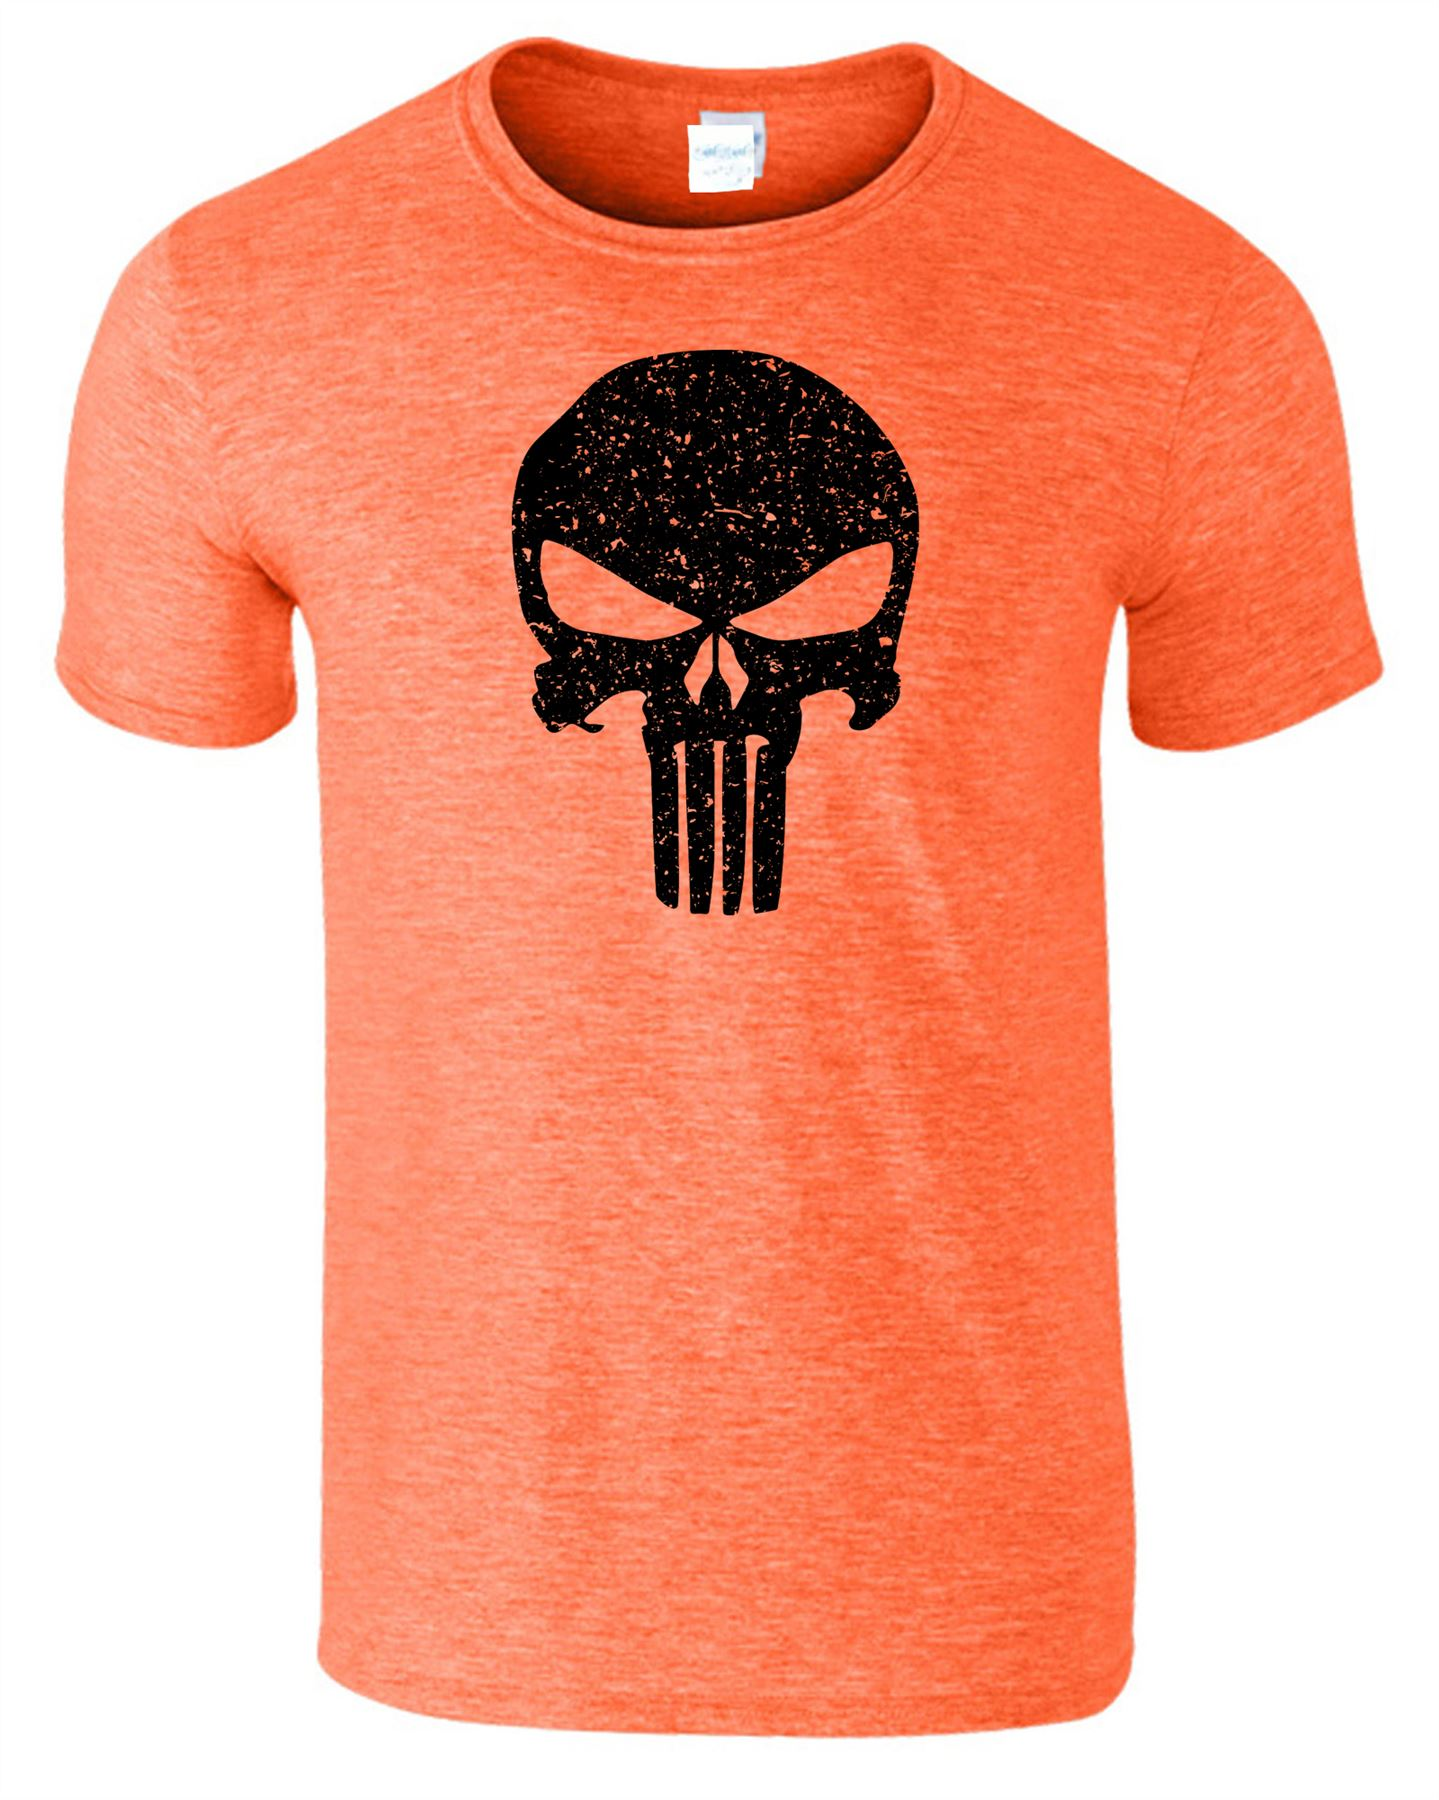 Punisher-The-Skull-Mens-Body-Fit-T-Shirt-Gym-Bodybuilding-Adult-Training-Top